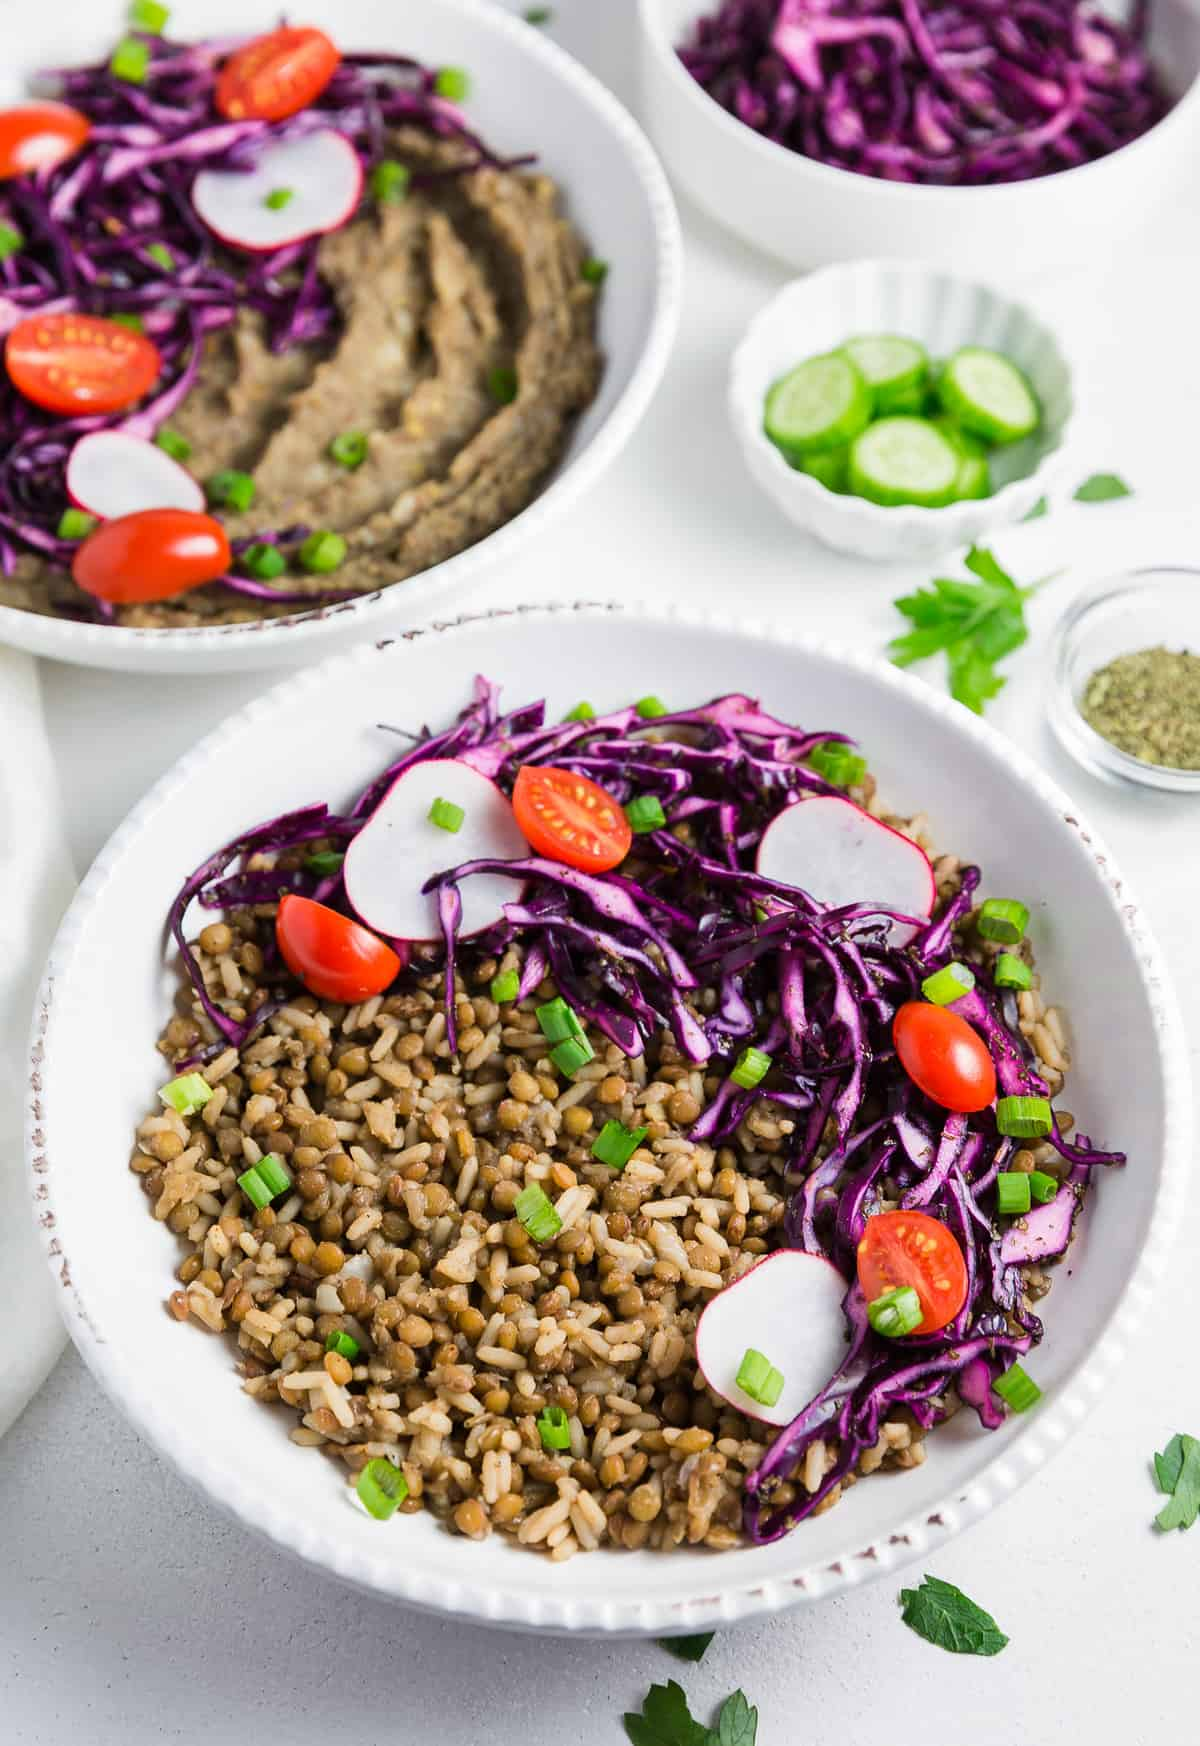 Mjedra Lebanese Lentils and Rice, plant based, vegan, vegetarian, whole food plant based, gluten free, recipe, wfpb, healthy, healthy vegan, oil free, no refined sugar, no oil, refined sugar free, dairy free, dinner party, entertaining, dinner